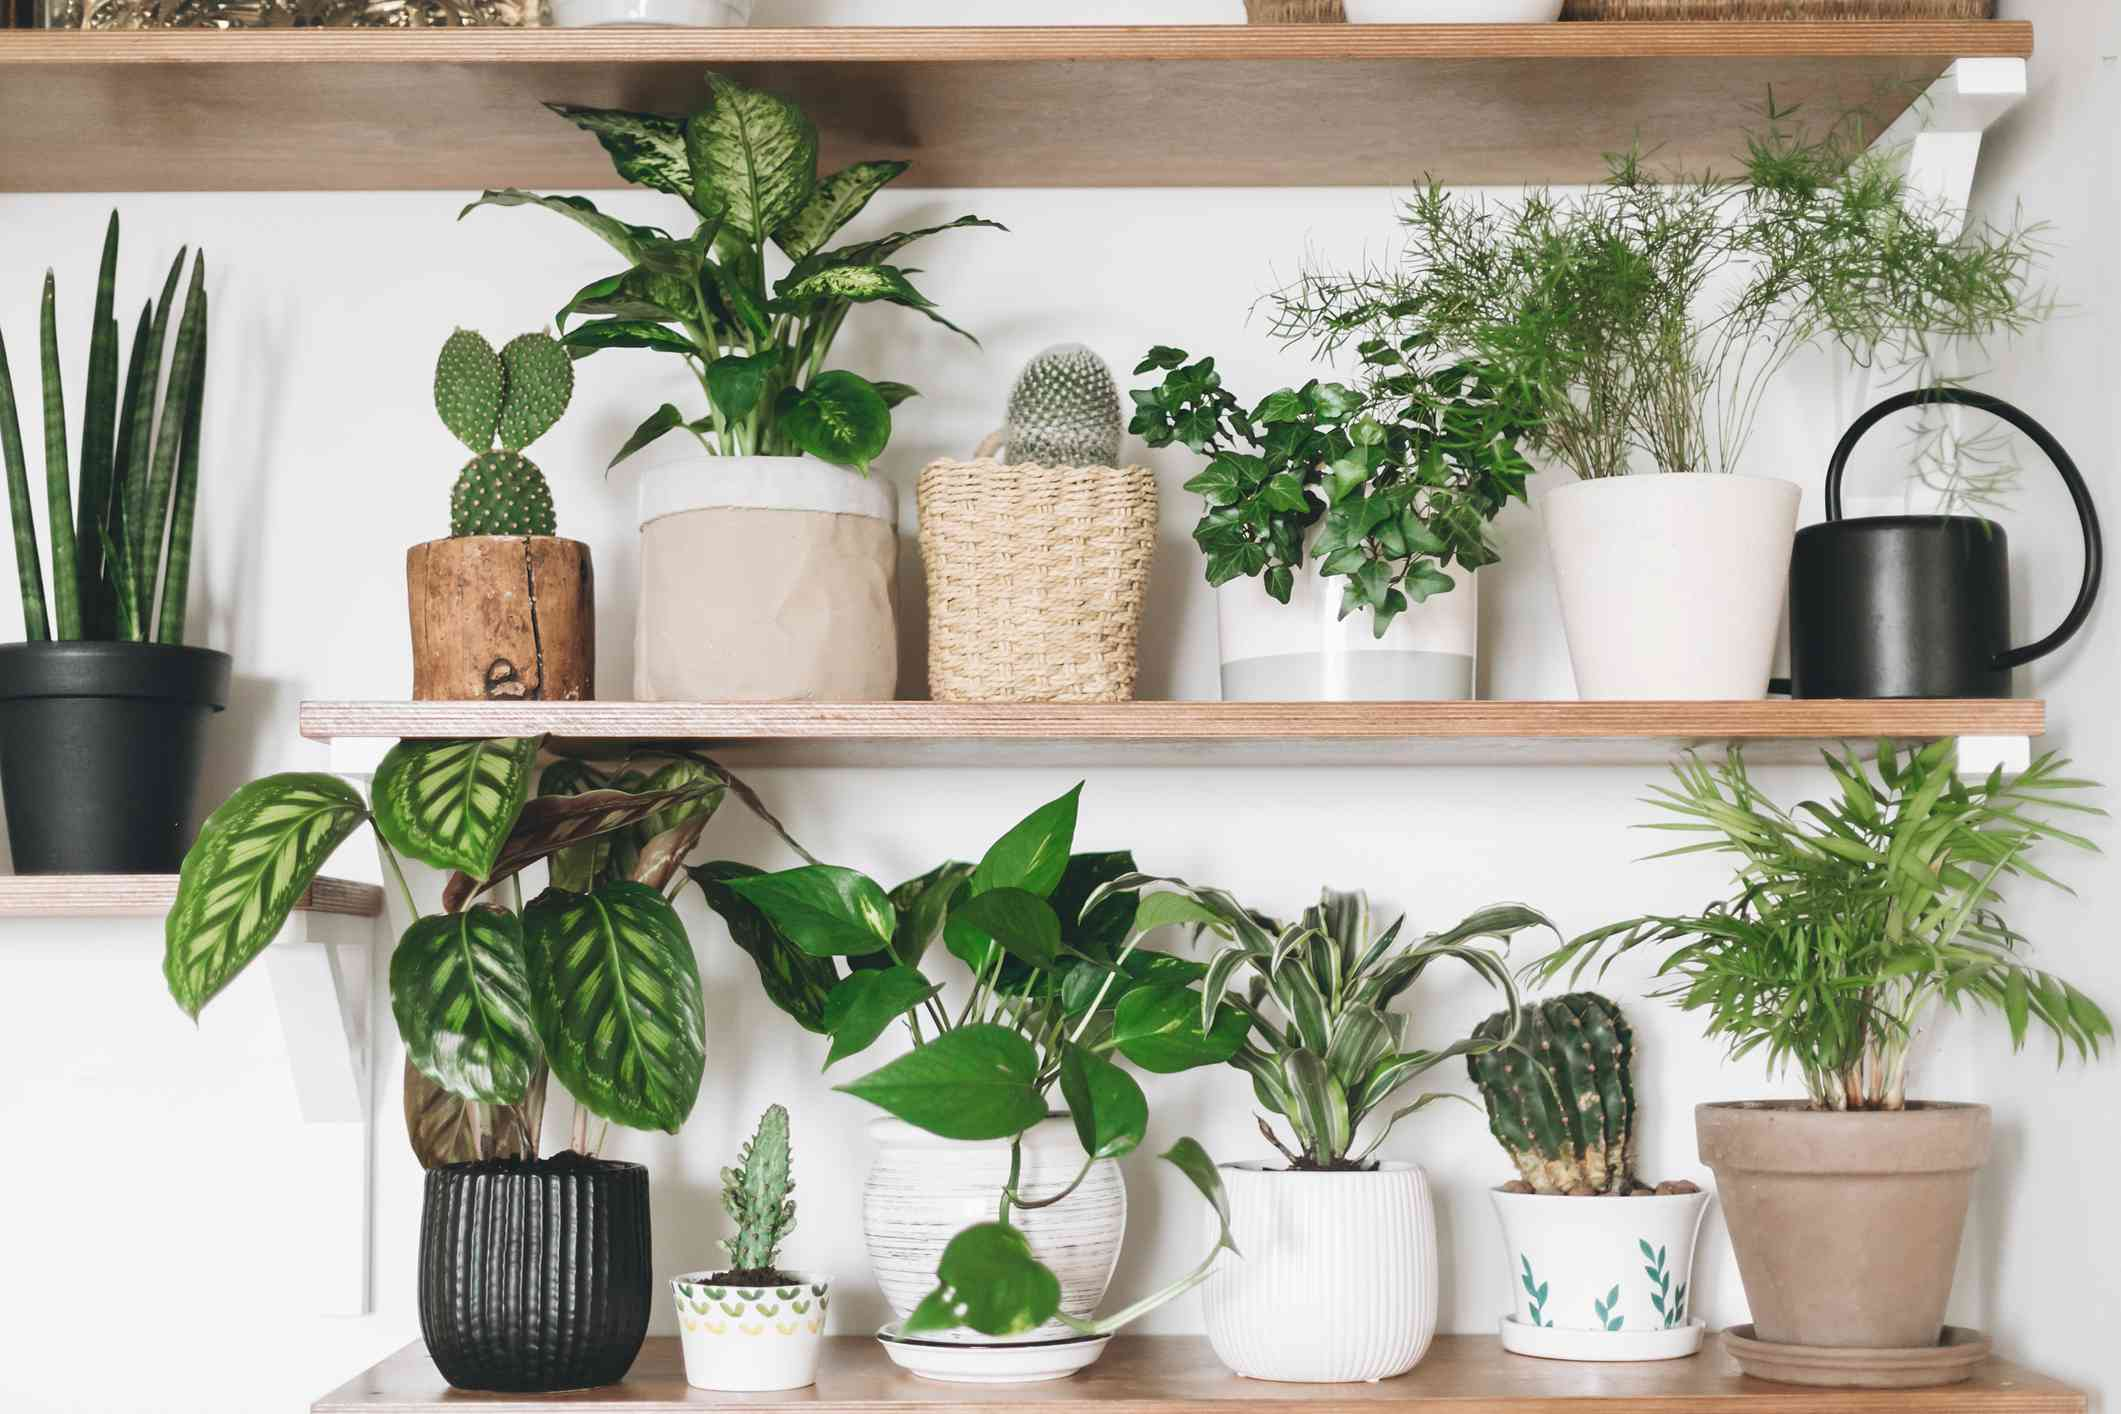 How to Care For (and Propagate) Your Pothos Plant